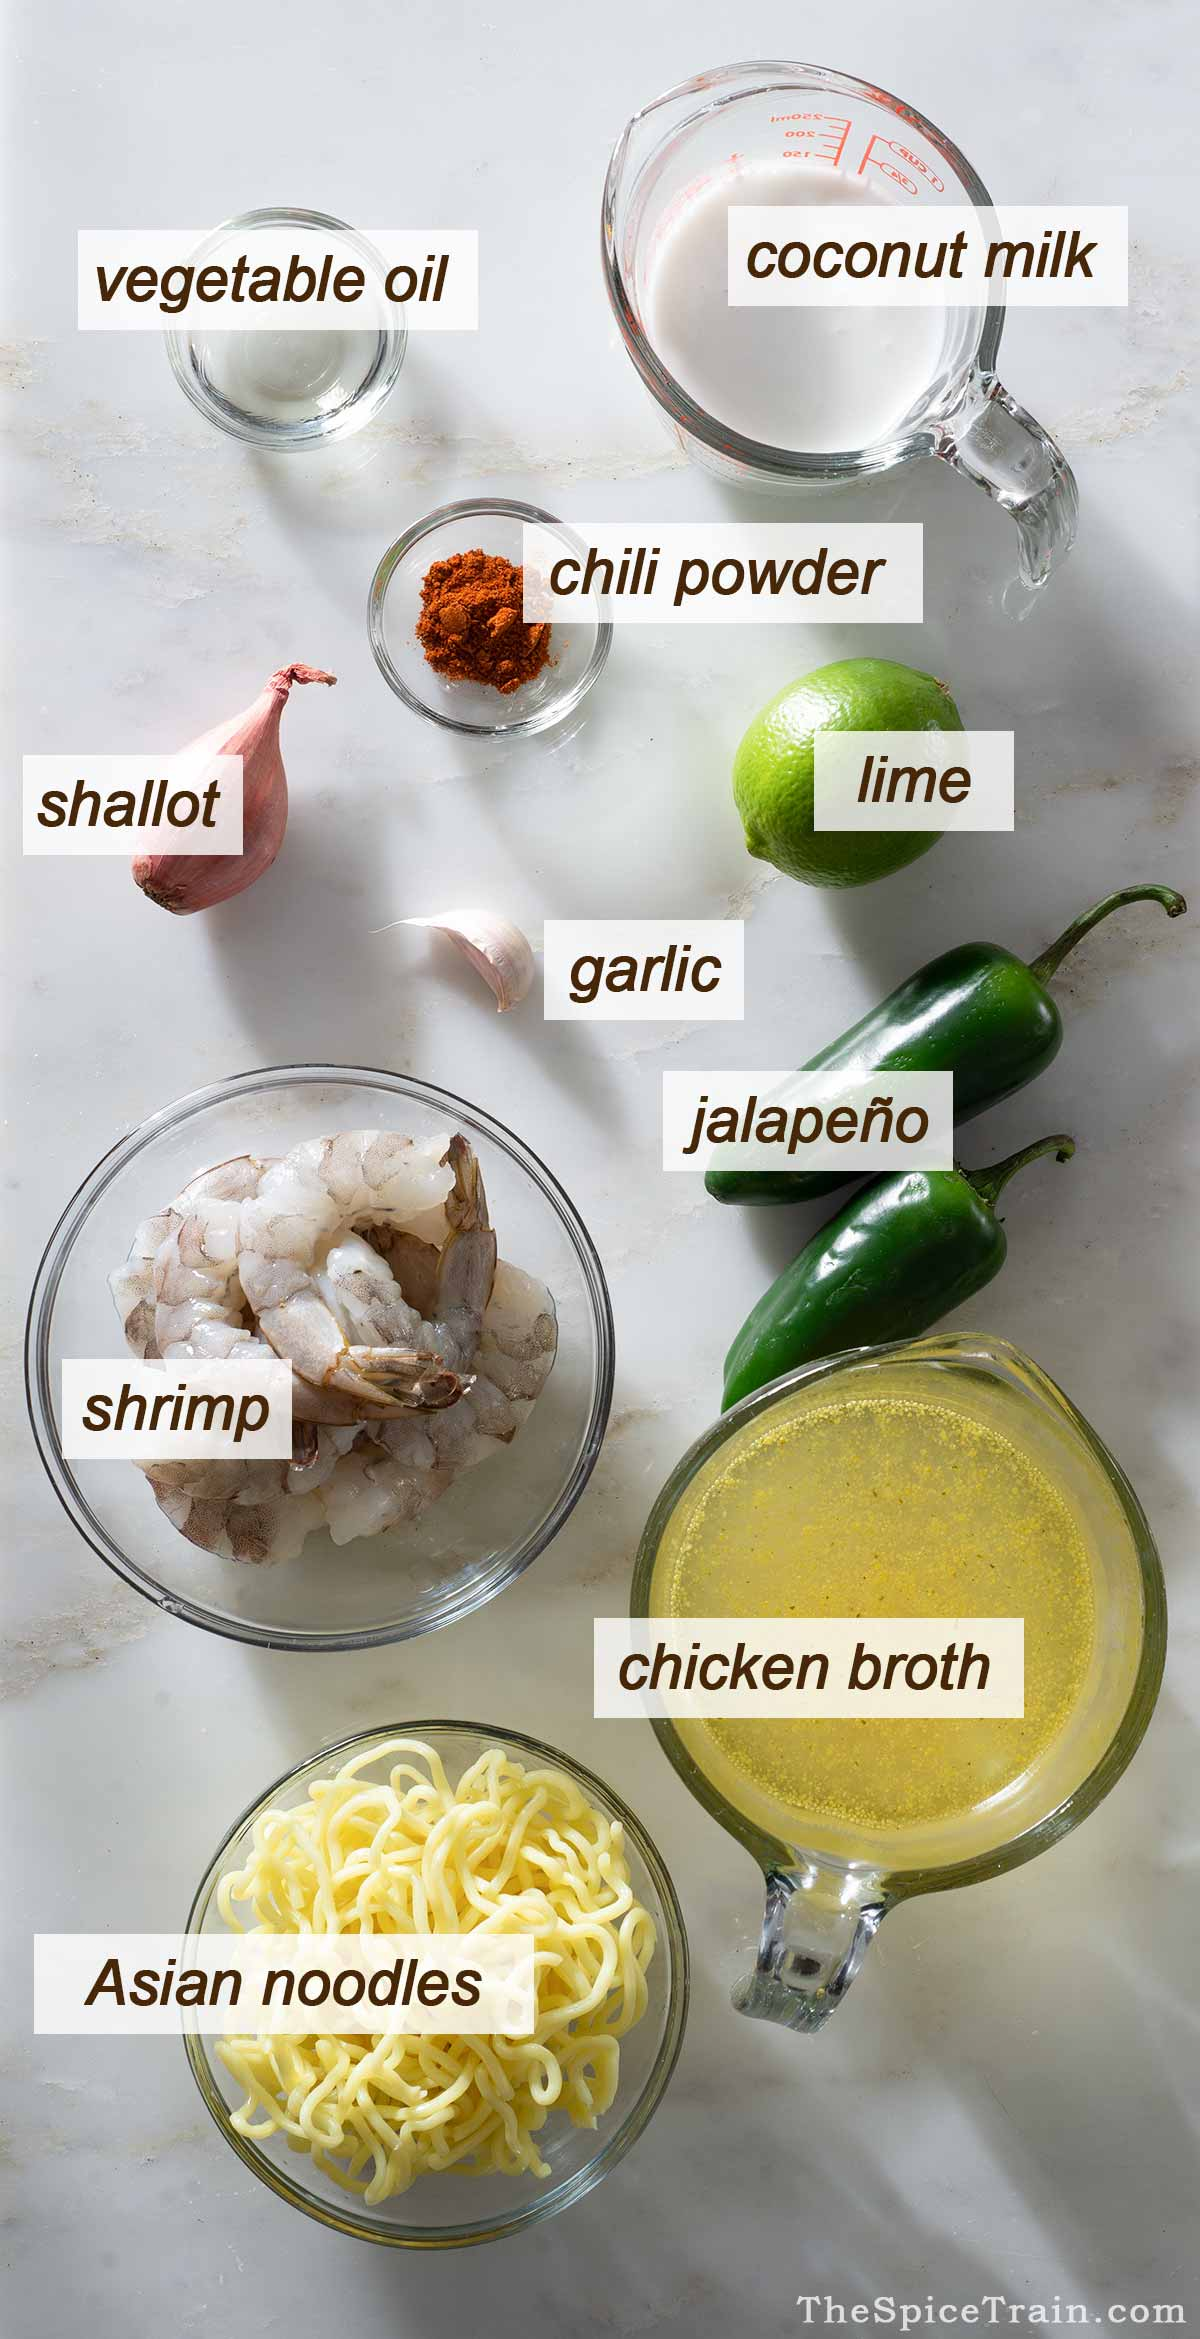 Ingredients for coconut shrimp soup on a kitchen counter.